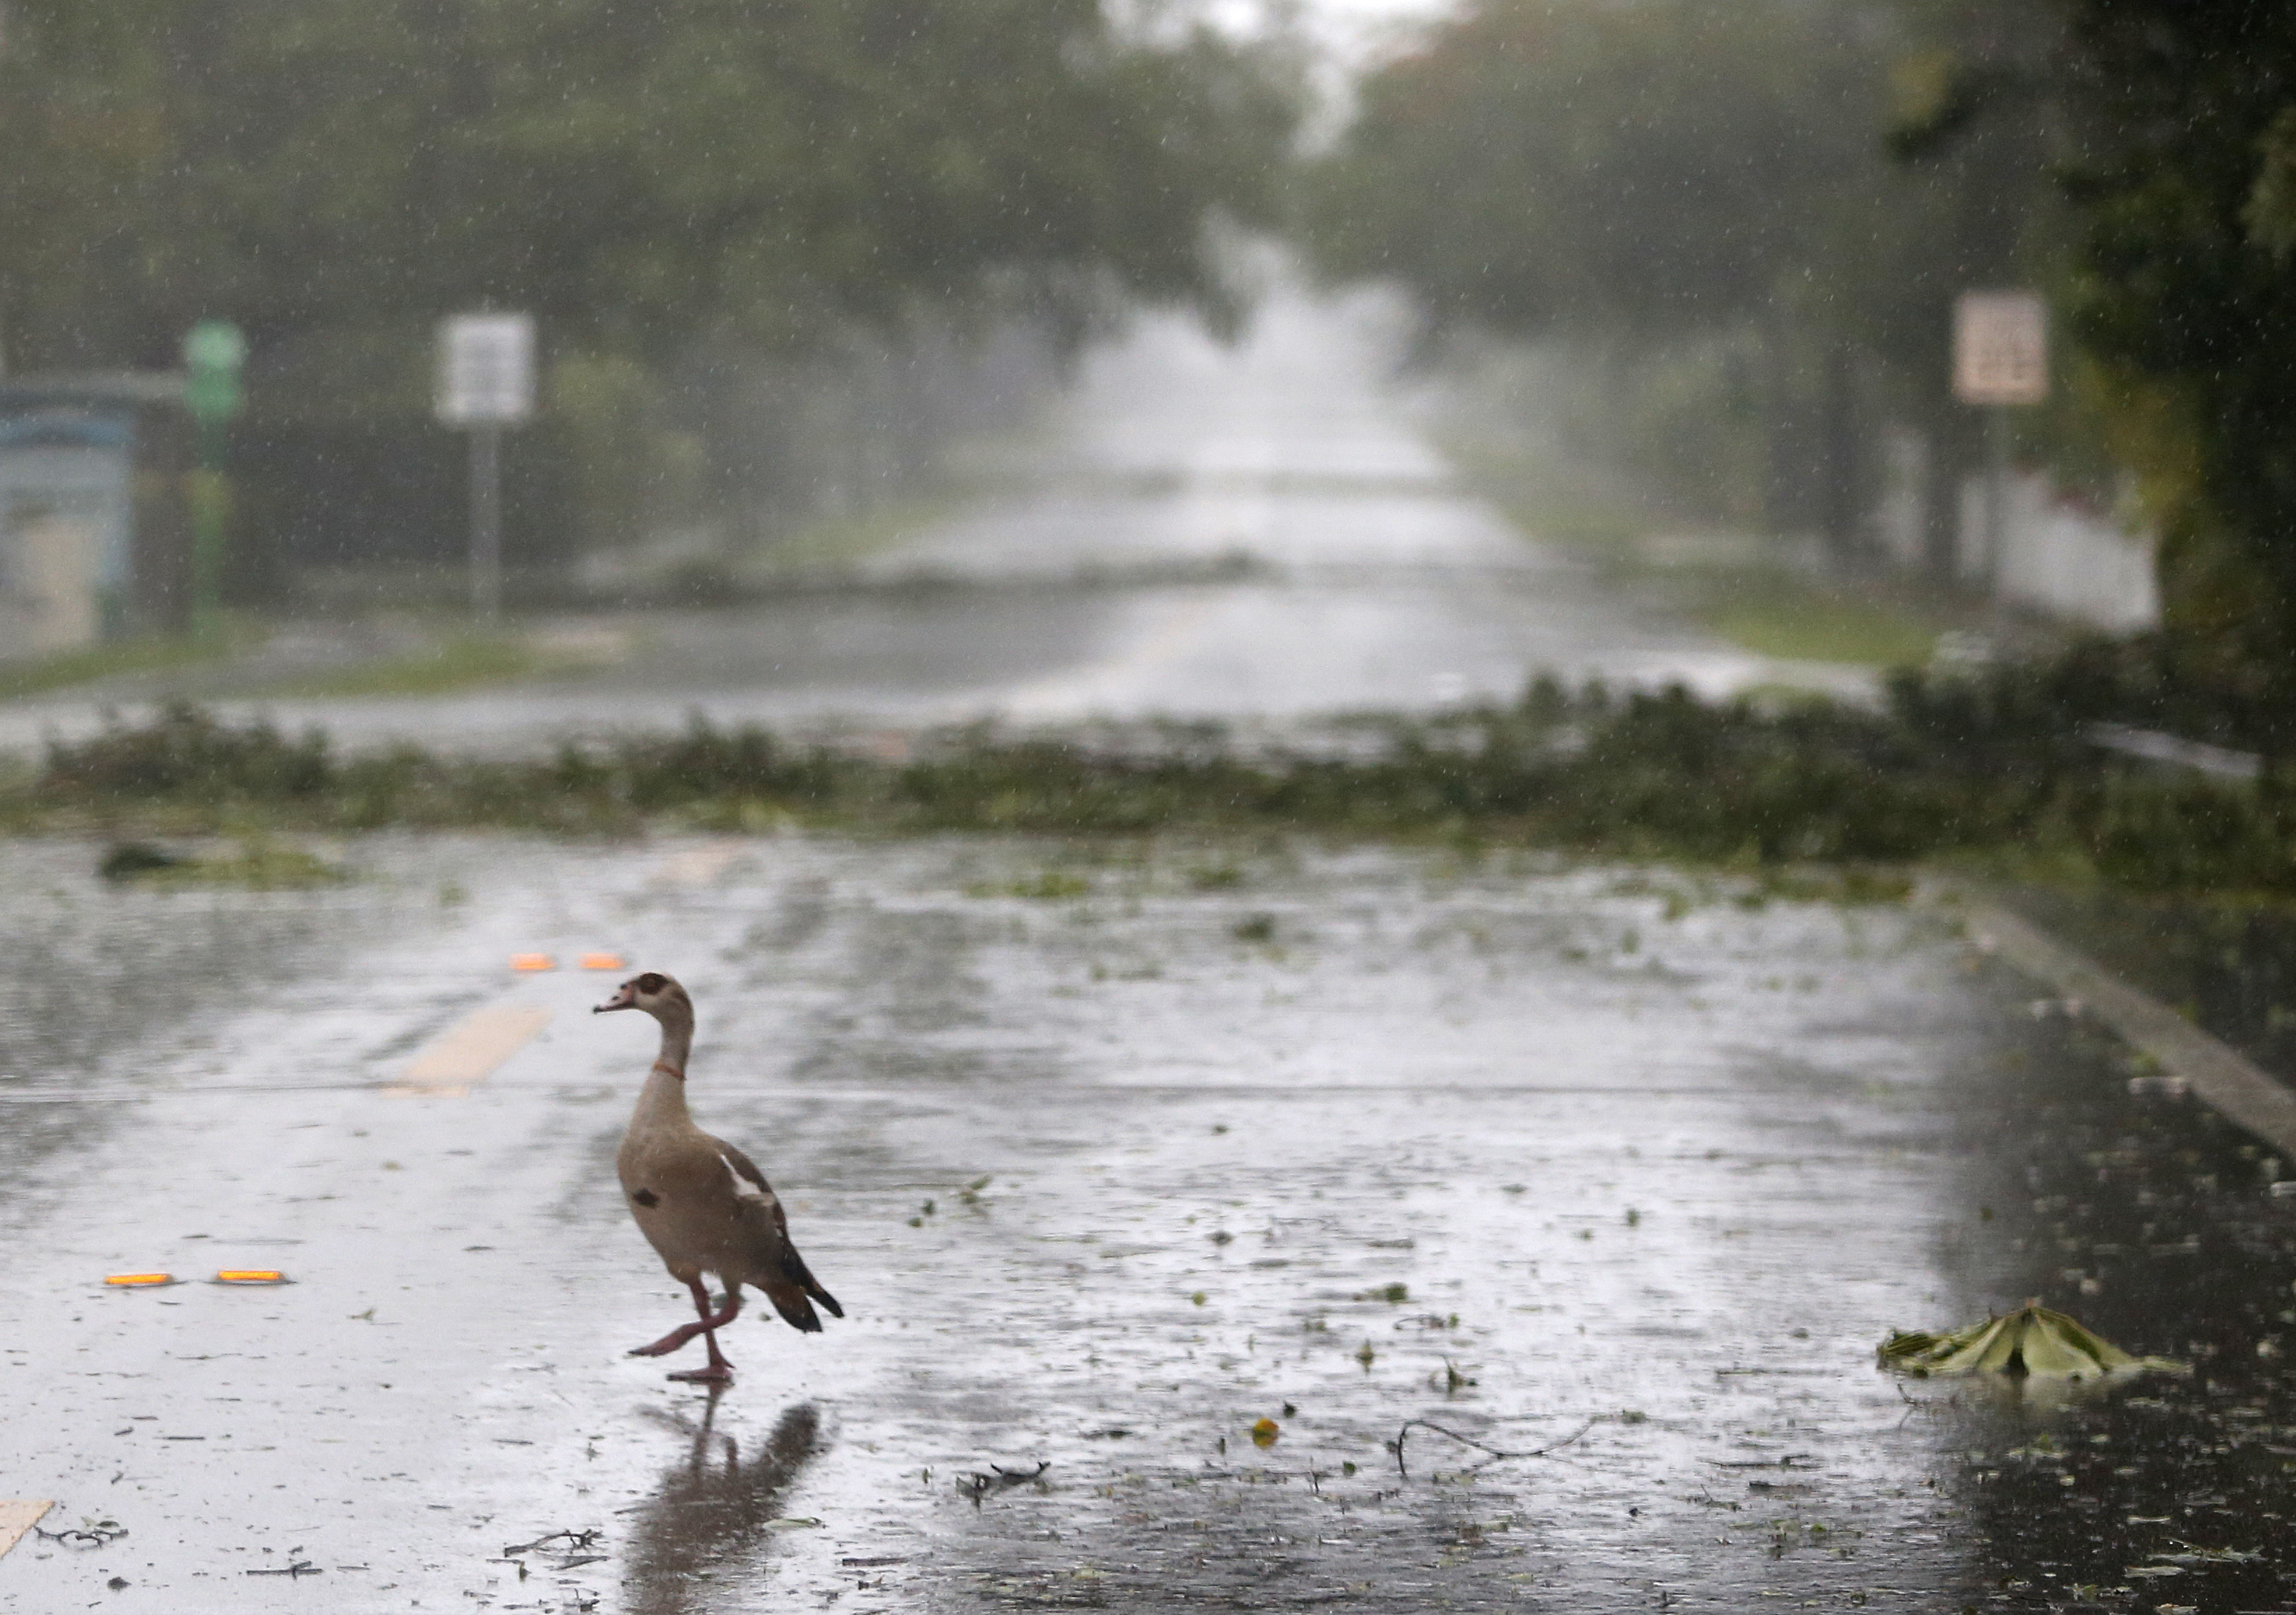 <div class='meta'><div class='origin-logo' data-origin='none'></div><span class='caption-text' data-credit='Wilfredo Lee/AP Photo'>An Egyptian Goose stands in the middle of a debris-strewn road as Hurricane Irma passes by, Sunday, Sept. 10, 2017, in Coral Gables, Fla.</span></div>